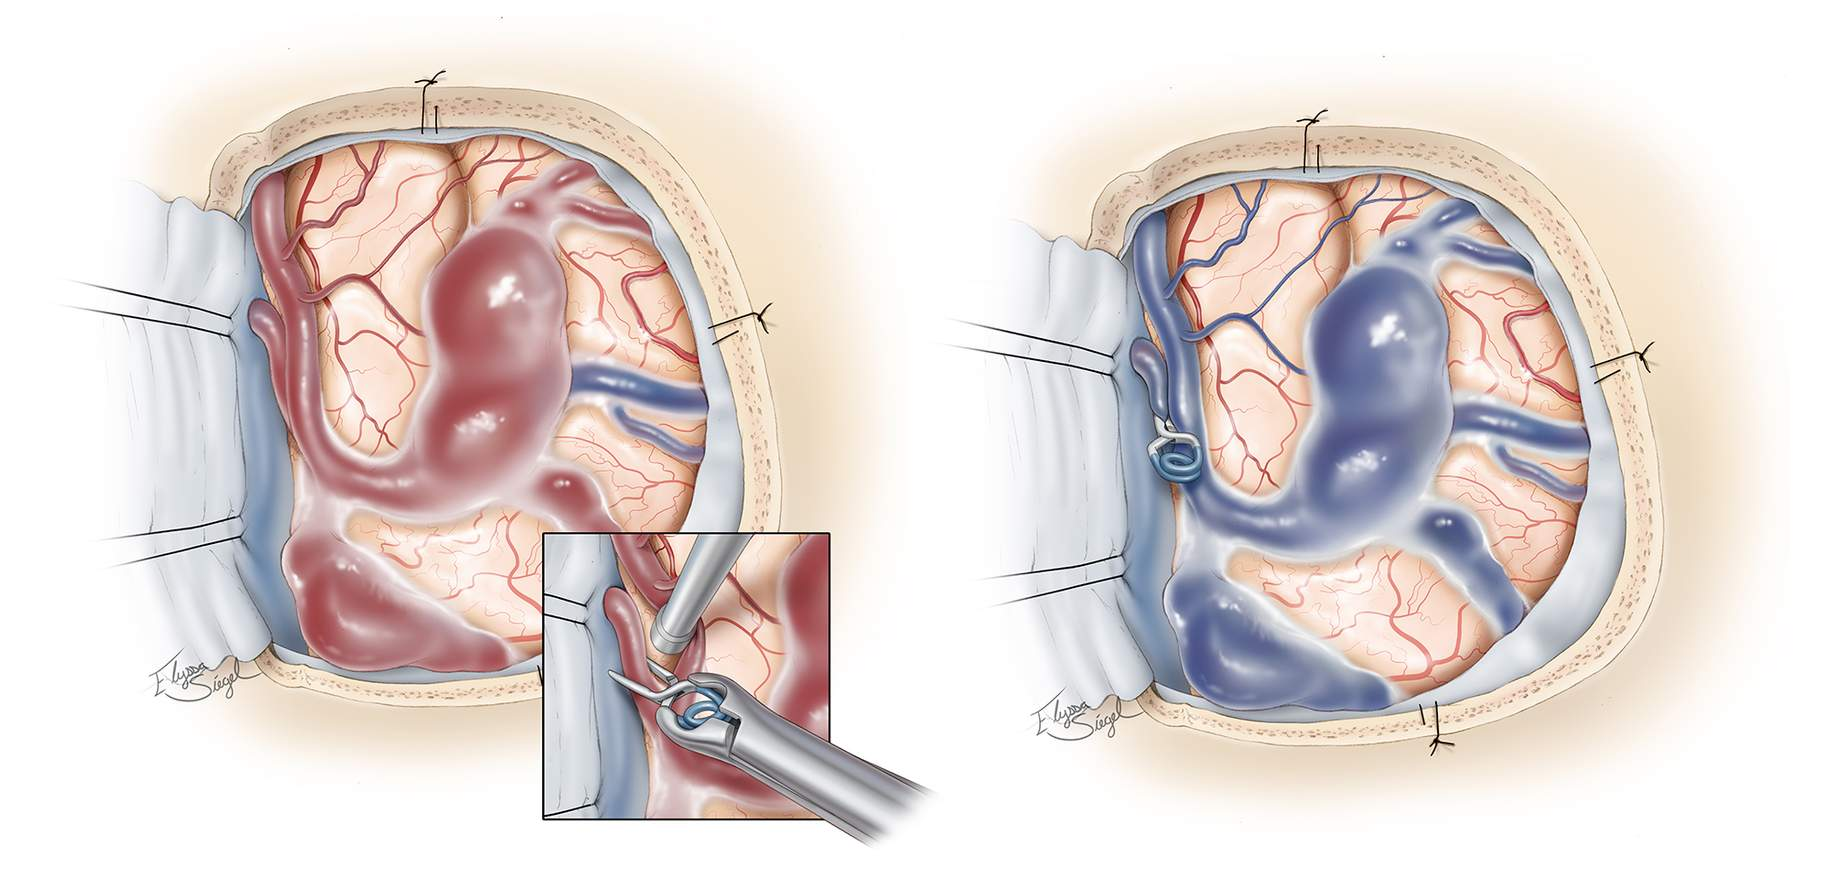 Figure 3: A left posterior frontal craniotomy for clip ligation of a single parasagittal fistula draining into the midportion of the superior sagittal sinus is illustrated. The arterialized cortical vein demonstrates venous ectasias, which are very common in this subtype of dAVFs and carry a significant hemorrhage risk (left). A clip is placed on the arterialized vein at the site of its connection to the venous sinus with resultant occlusion of the fistula (left image, inset), after which the varices turn dark blue (right). Intraoperative fluorescence videoangiogram can confirm the lack of flow within the venous ectasias or varices. The varices do not need to be resected.